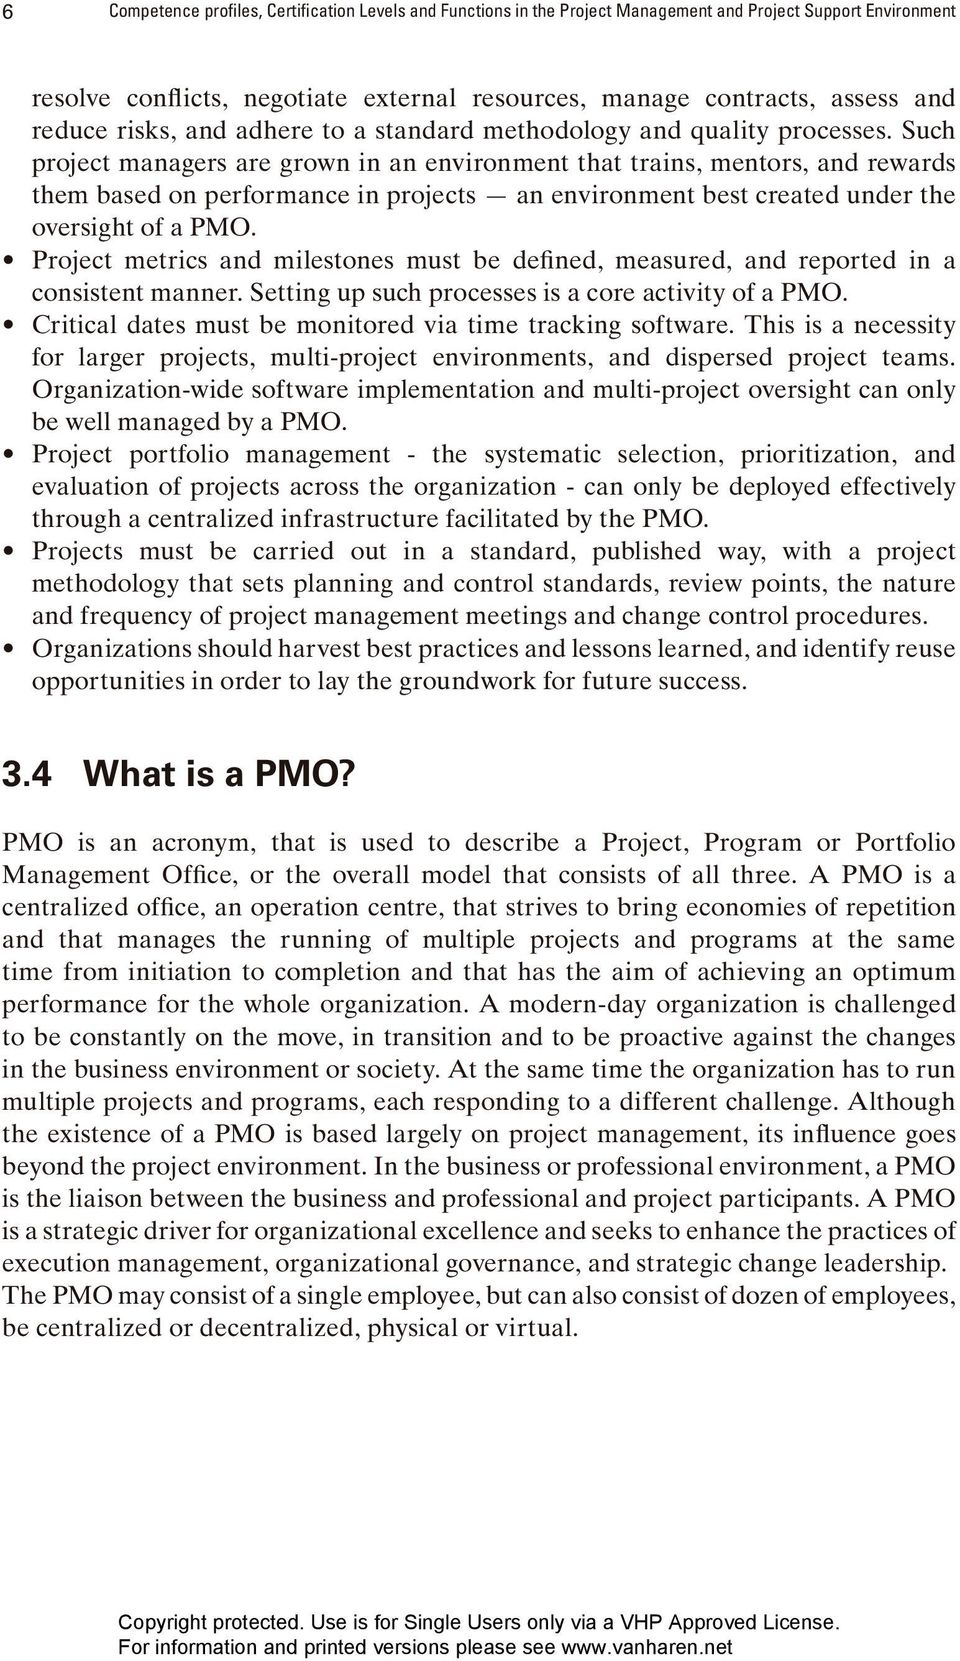 Such project managers are grown in an environment that trains, mentors, and rewards them based on perfor mance in projects an environment best created under the oversight of a PMO.